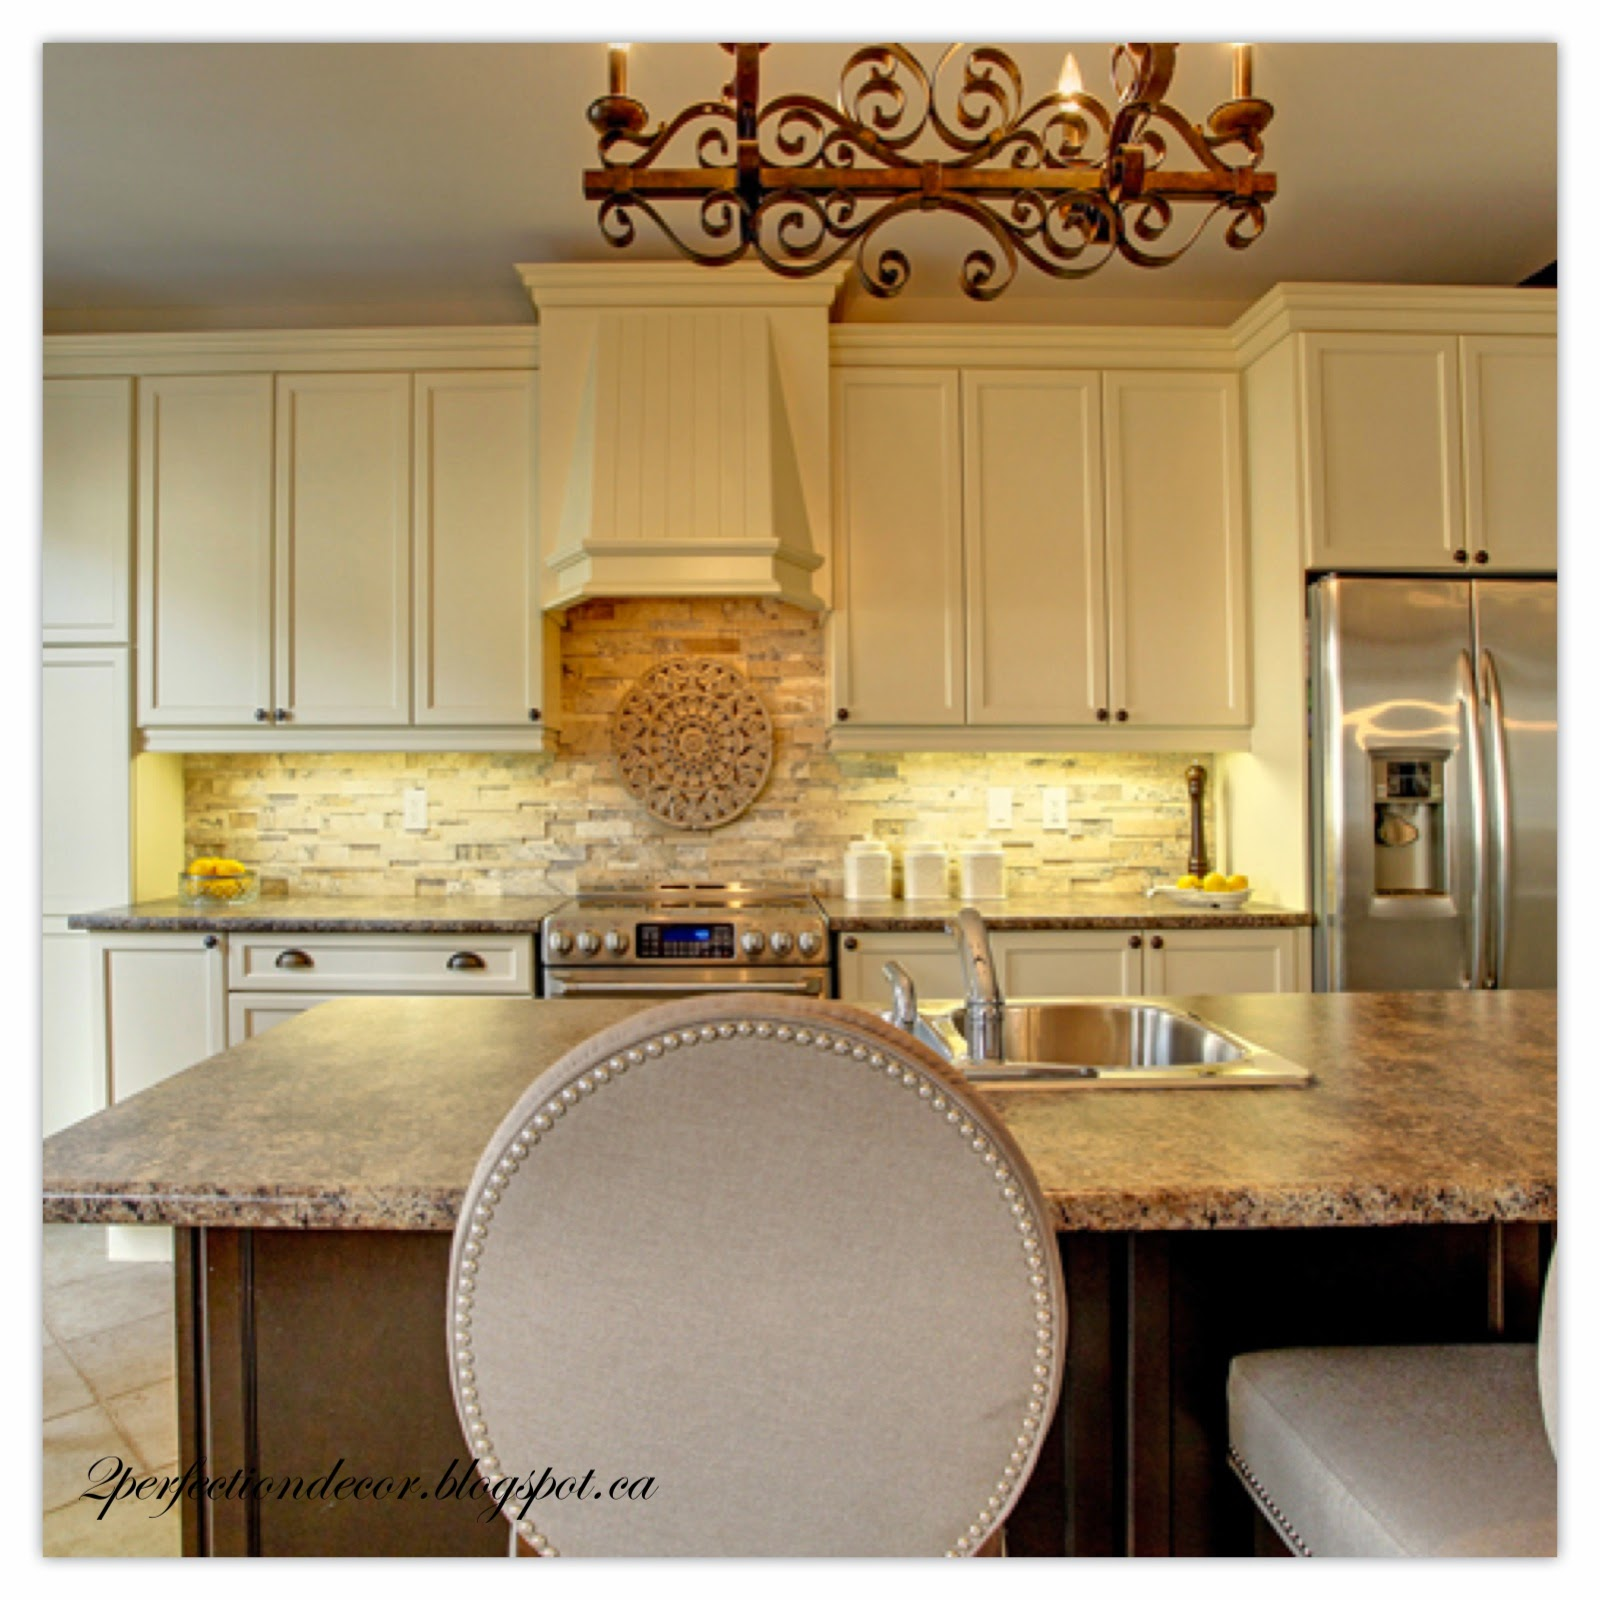 2Perfection Decor Kitchen Upgrades and Reveal